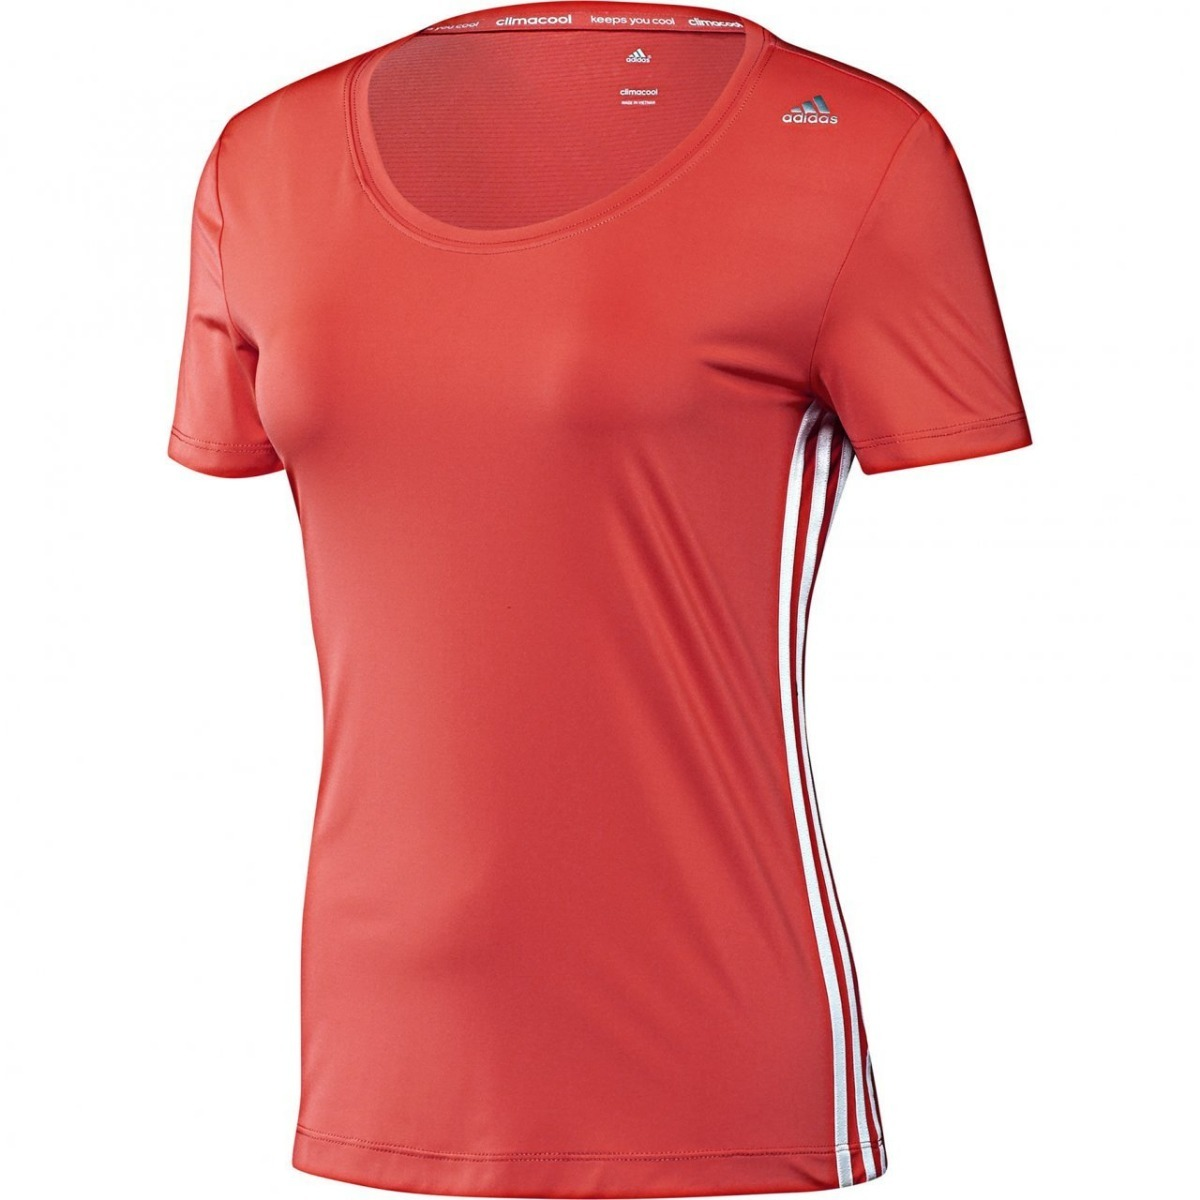 ce853be269521 Playera adidas Climacool Training Core D89464 Coral -   479.00 en ...